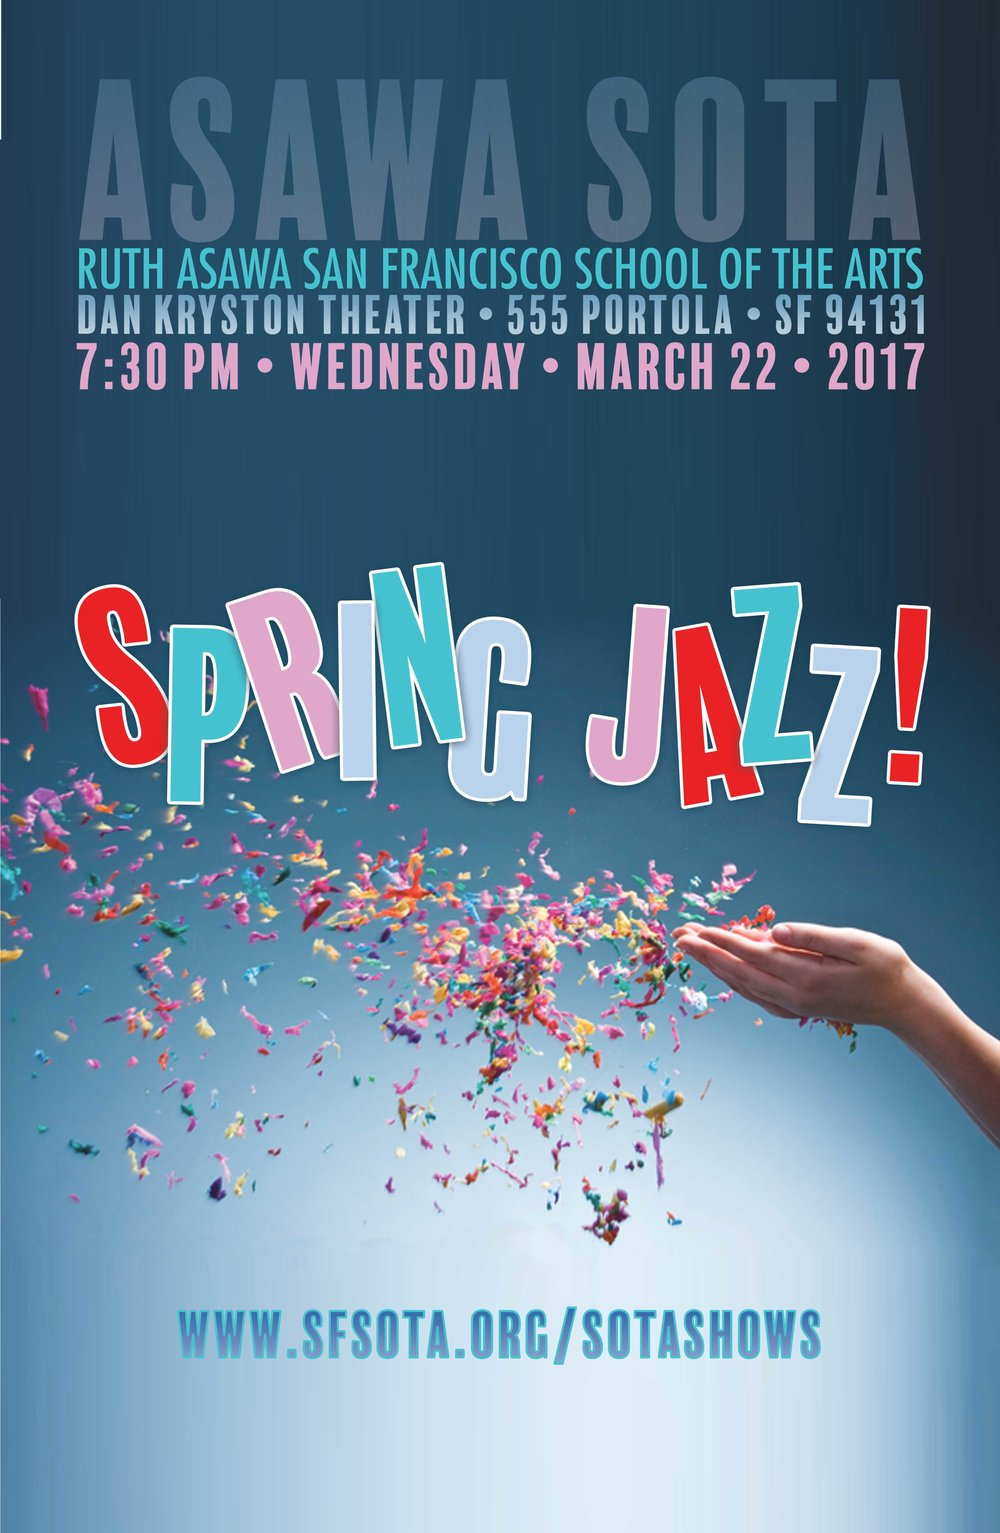 CALENDARCATCH SOME SPRING FEVER WITH ASAWA SOTA JAZZ